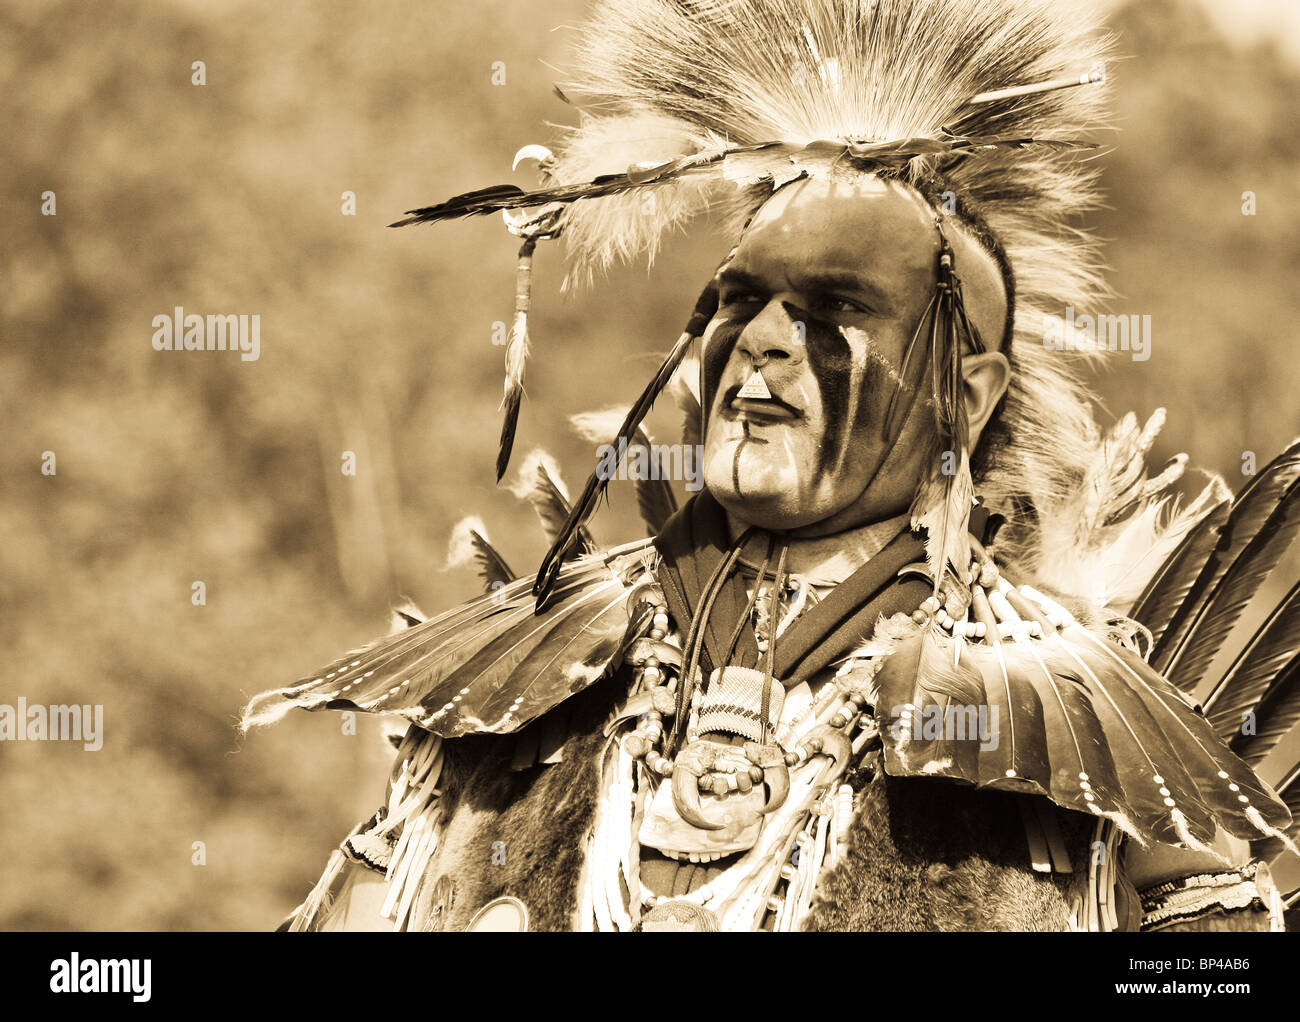 Keith Anderson dances in full traditional regalia at the 8th Annual Redwing PowWow in Virginia Beach, Virginia. - Stock Image